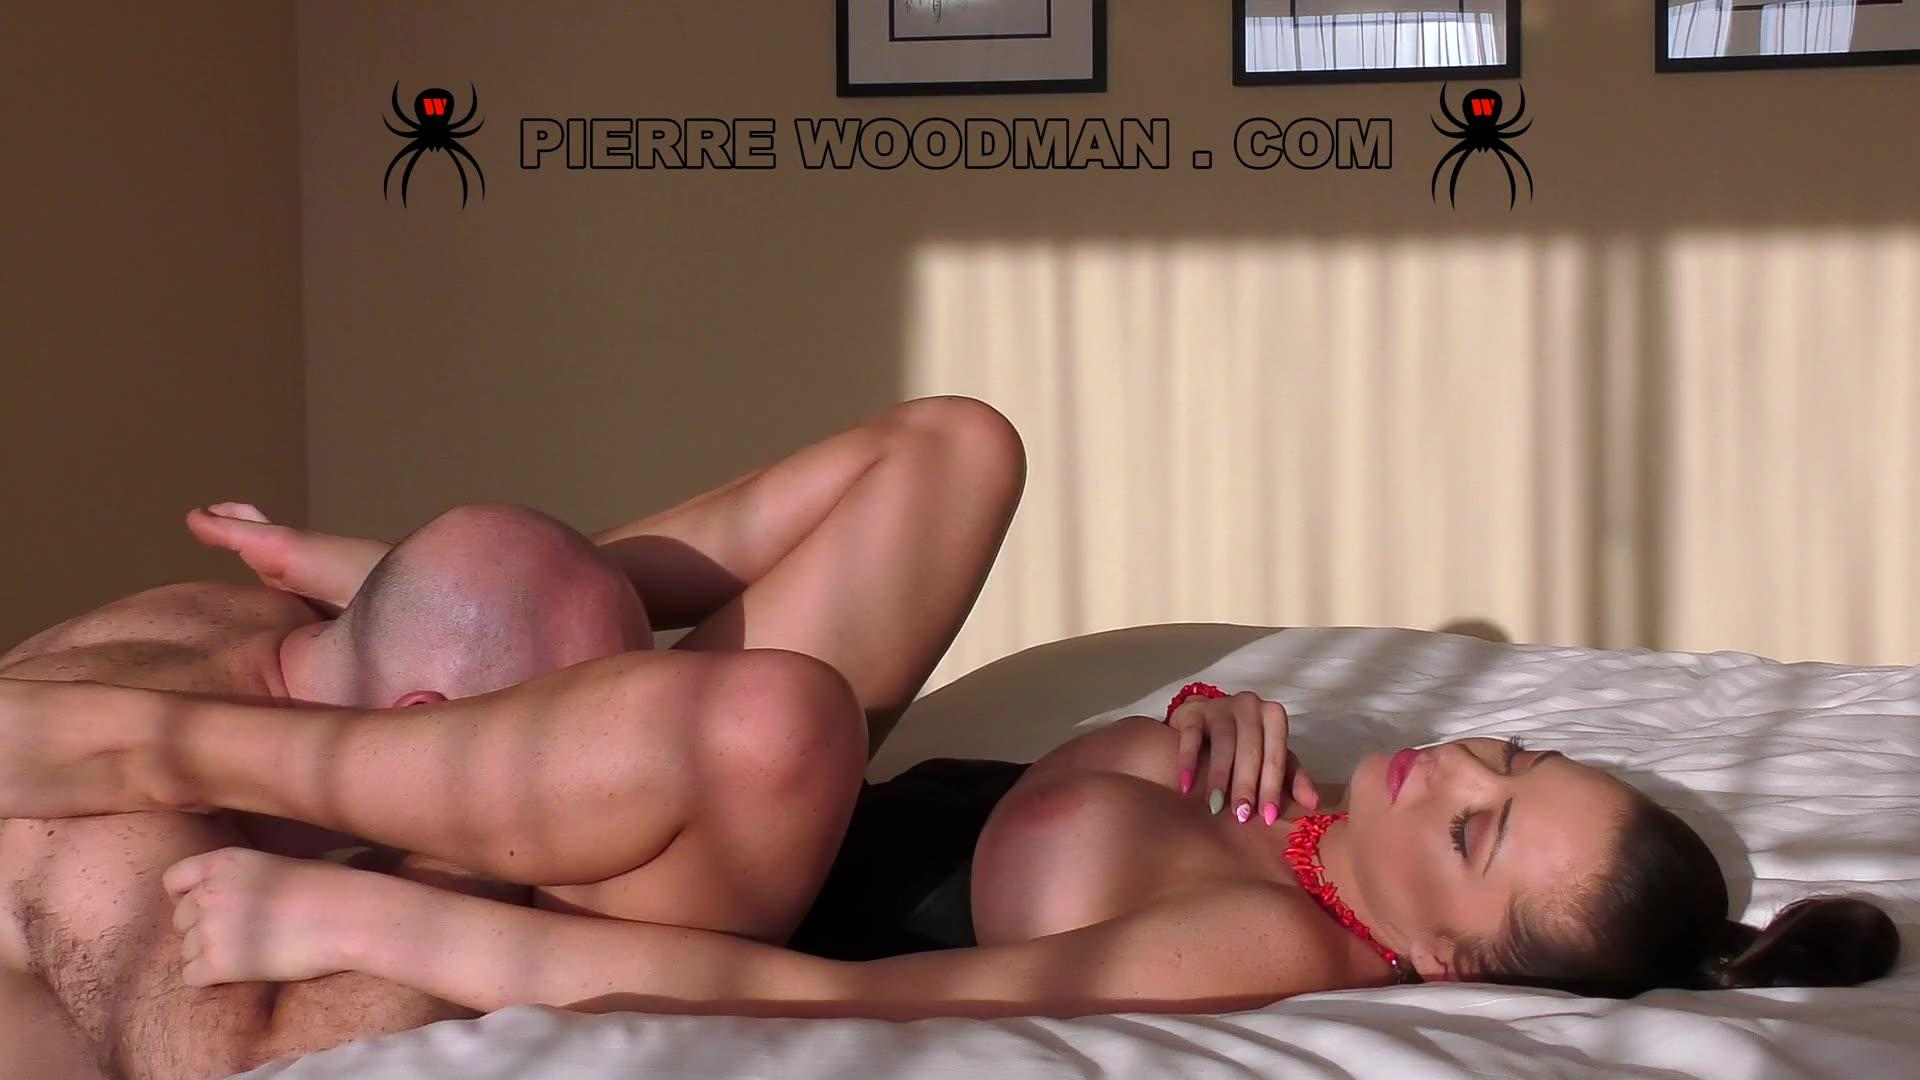 WoodmanCastingX 20 10 15 Barbara Bella WSG 14 XXX 1080p MP4-NBQ